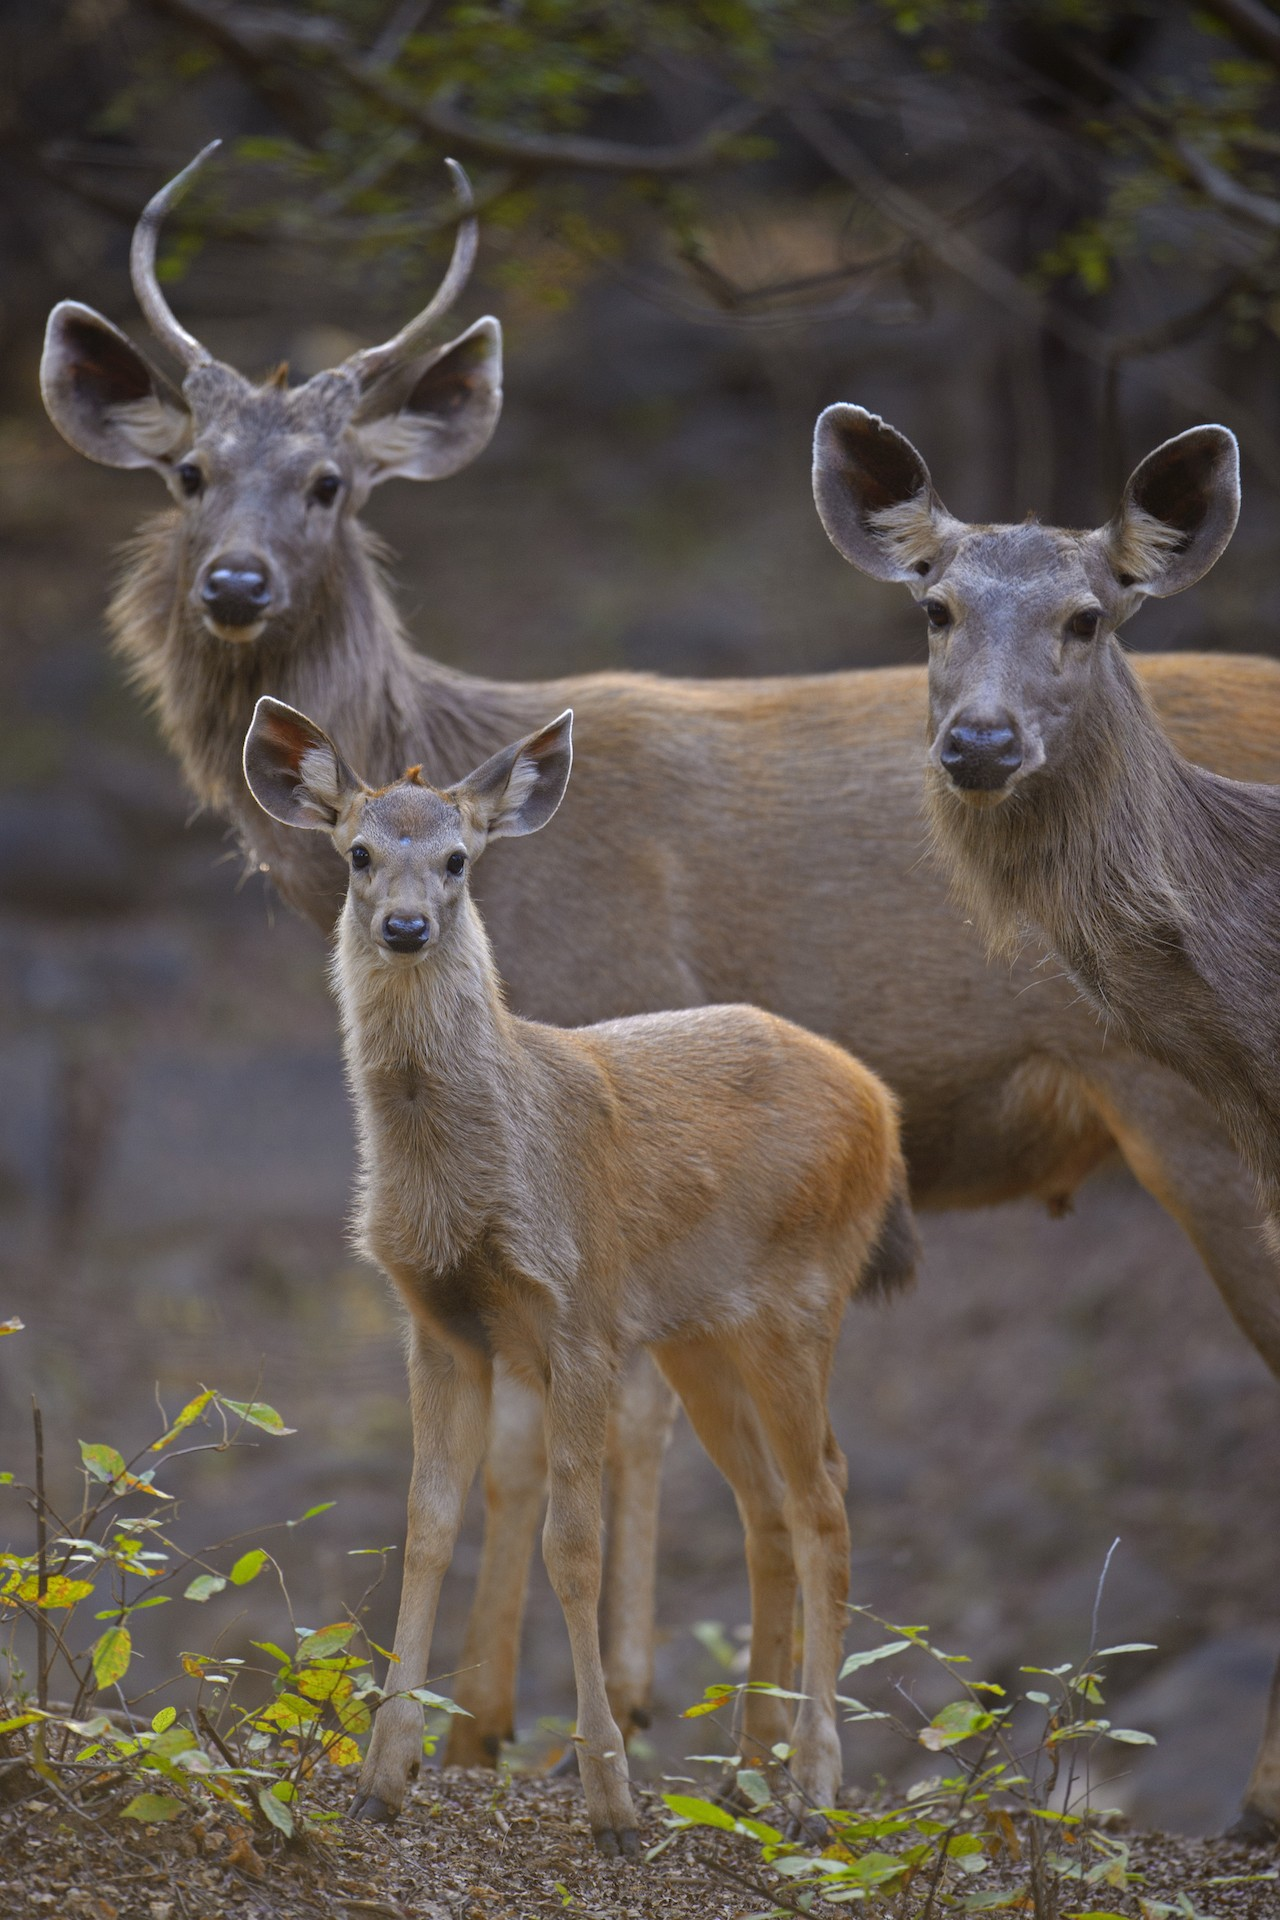 South Asia's largest deer species, the sambar deer are the tiger's favourite prey, constituting an ideal sized meal for the big cat. Not nearly as gregarious as the spotted deer, sambar deer are often seen in smaller herds or family groups.  Photo: Dhritiman Mukherjee